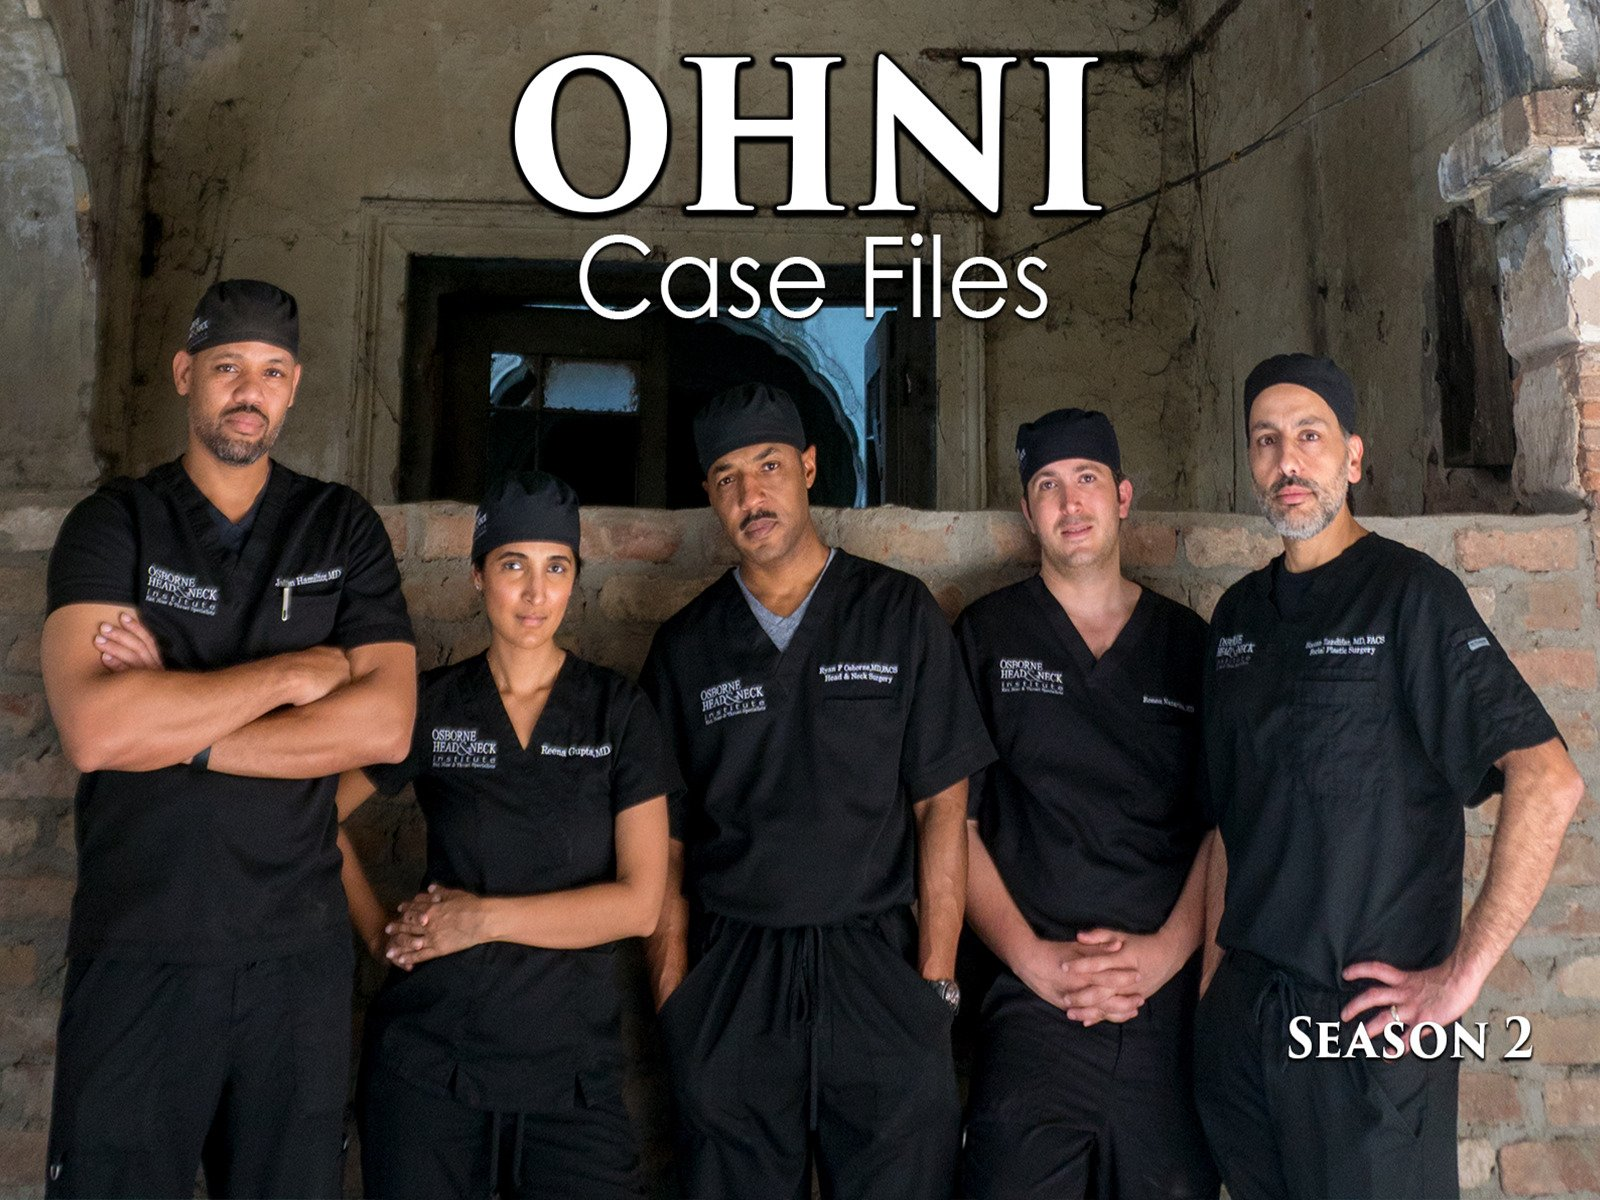 OHNI Case Files - Season 2